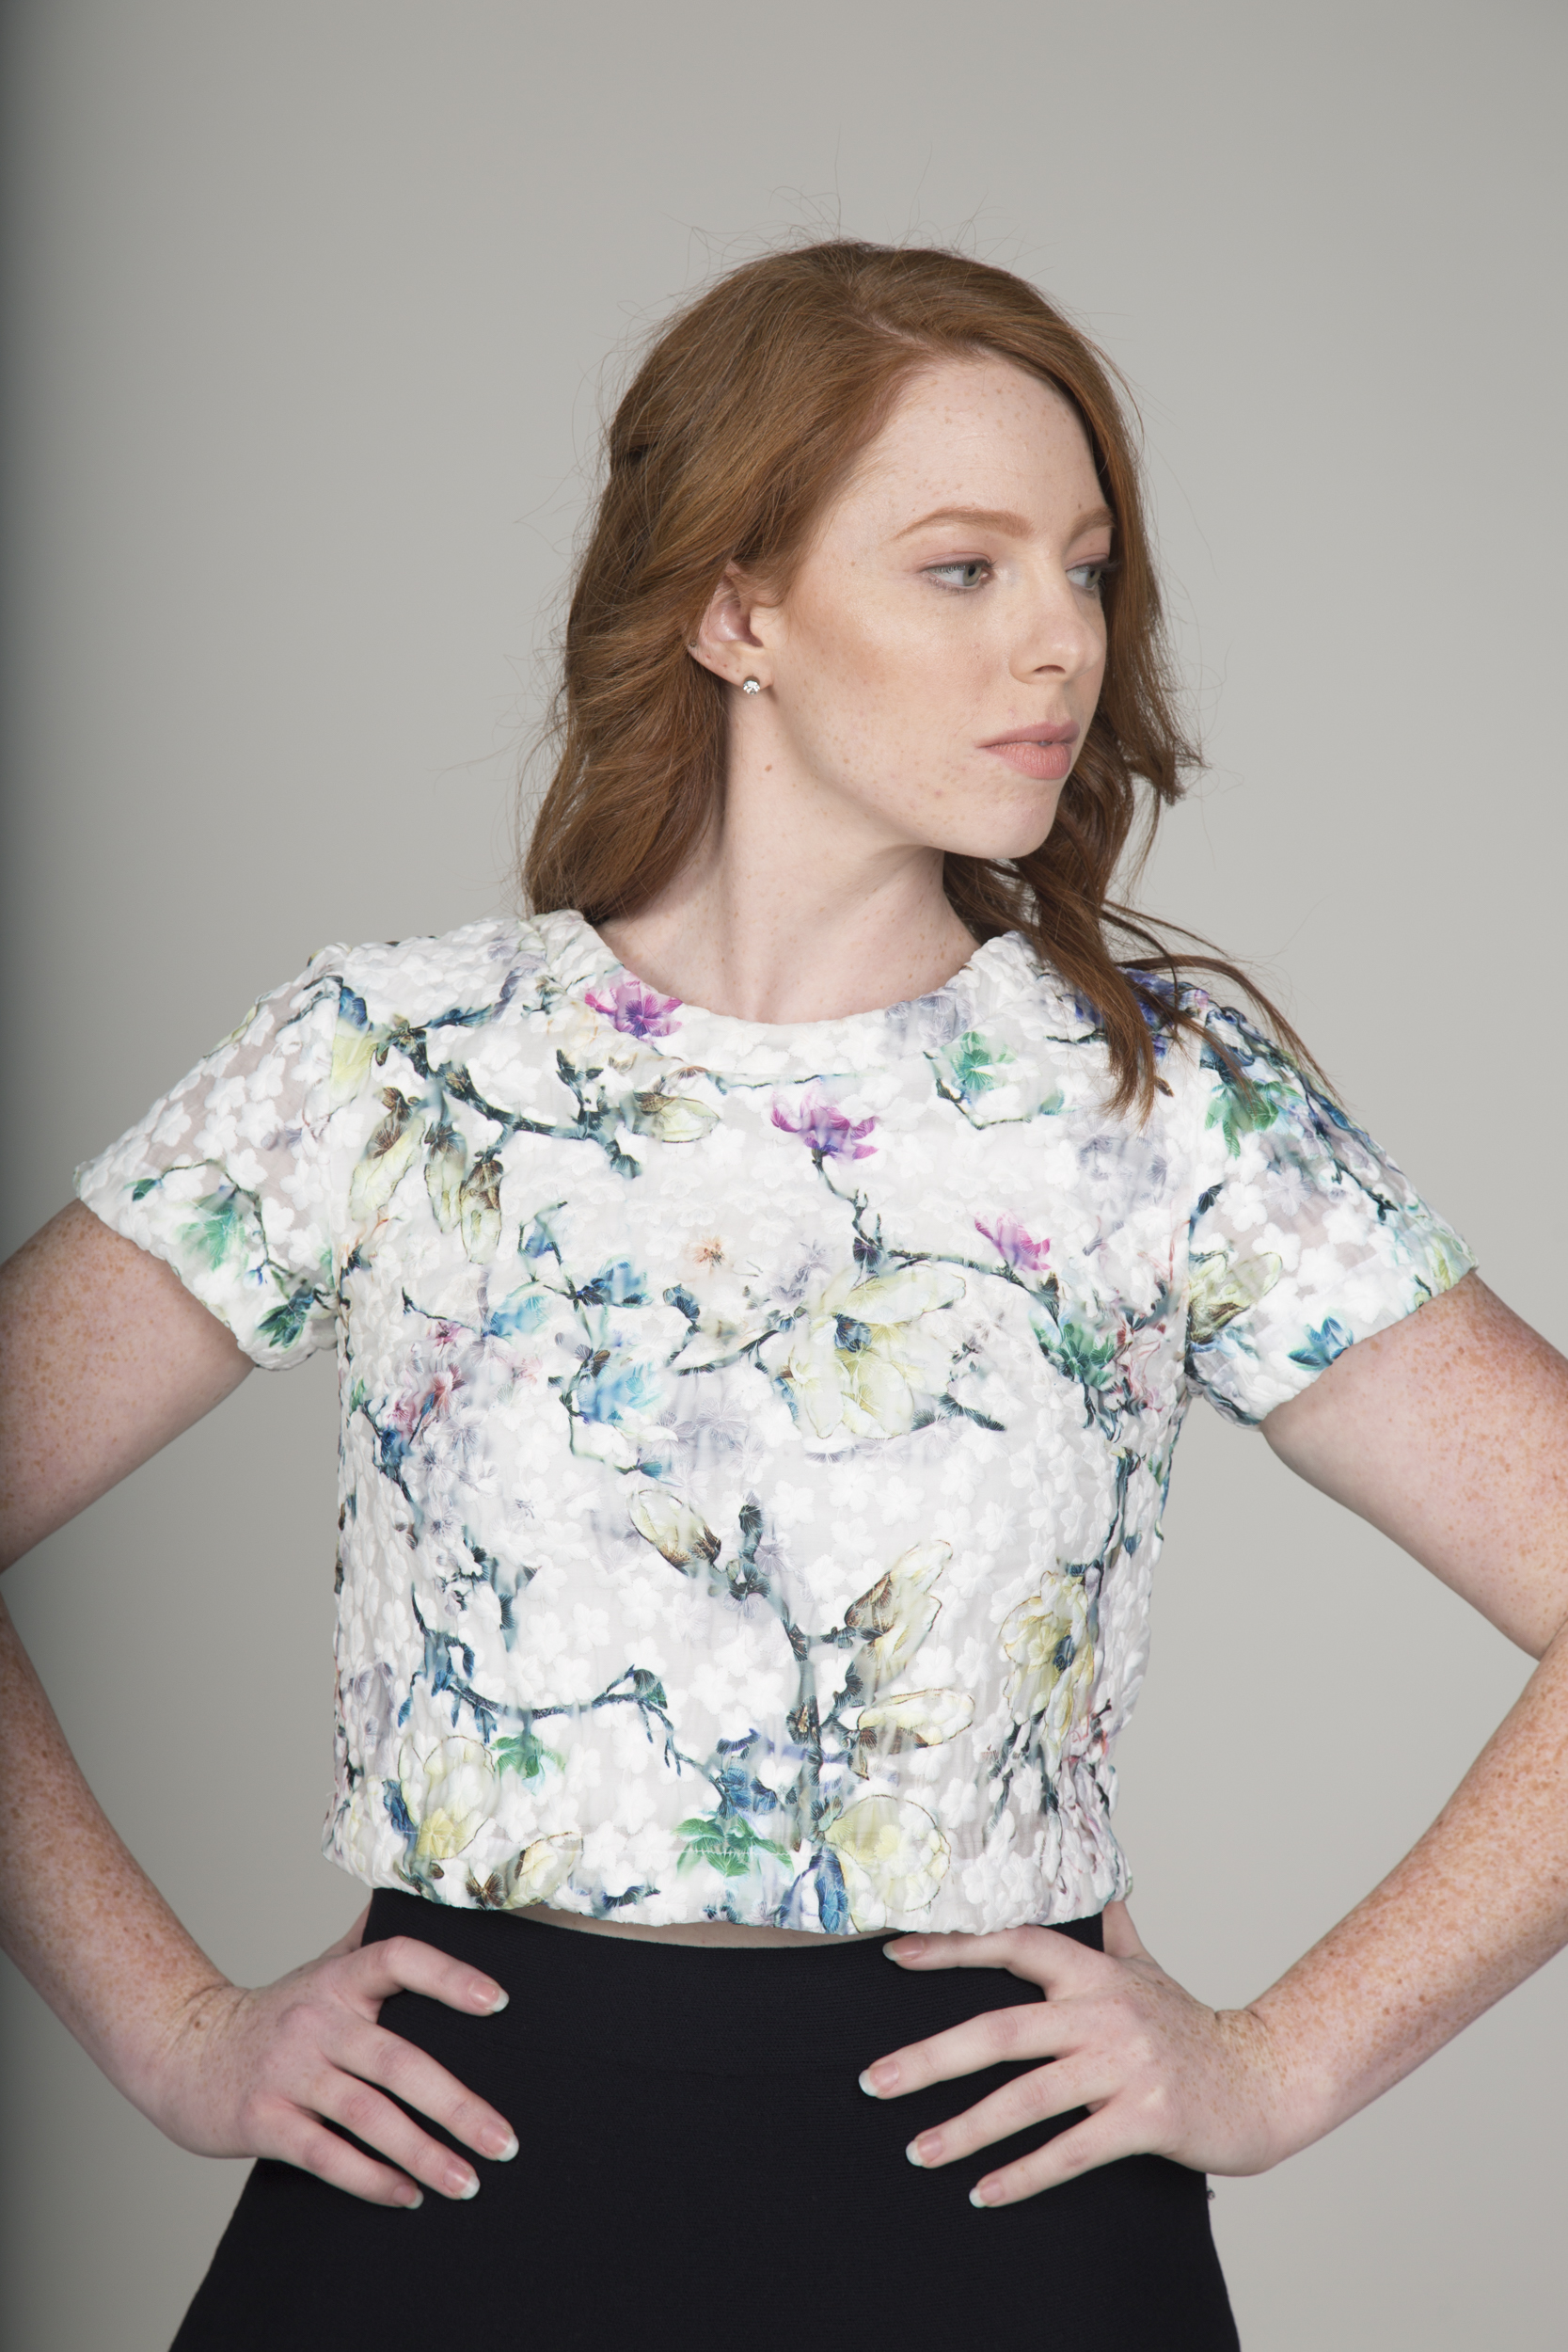 """This is probably one of our most popular items.  The double floral pattern (white embroidered flowers and floral screen print) makes this a statement piece in itself.  Even though it's a crop top by name, it still can be worn with a pair of slacks or a high waisted skirt.  It falls right at the waist line and still can be comfortably worn to a formal event."" -BhavyJ"